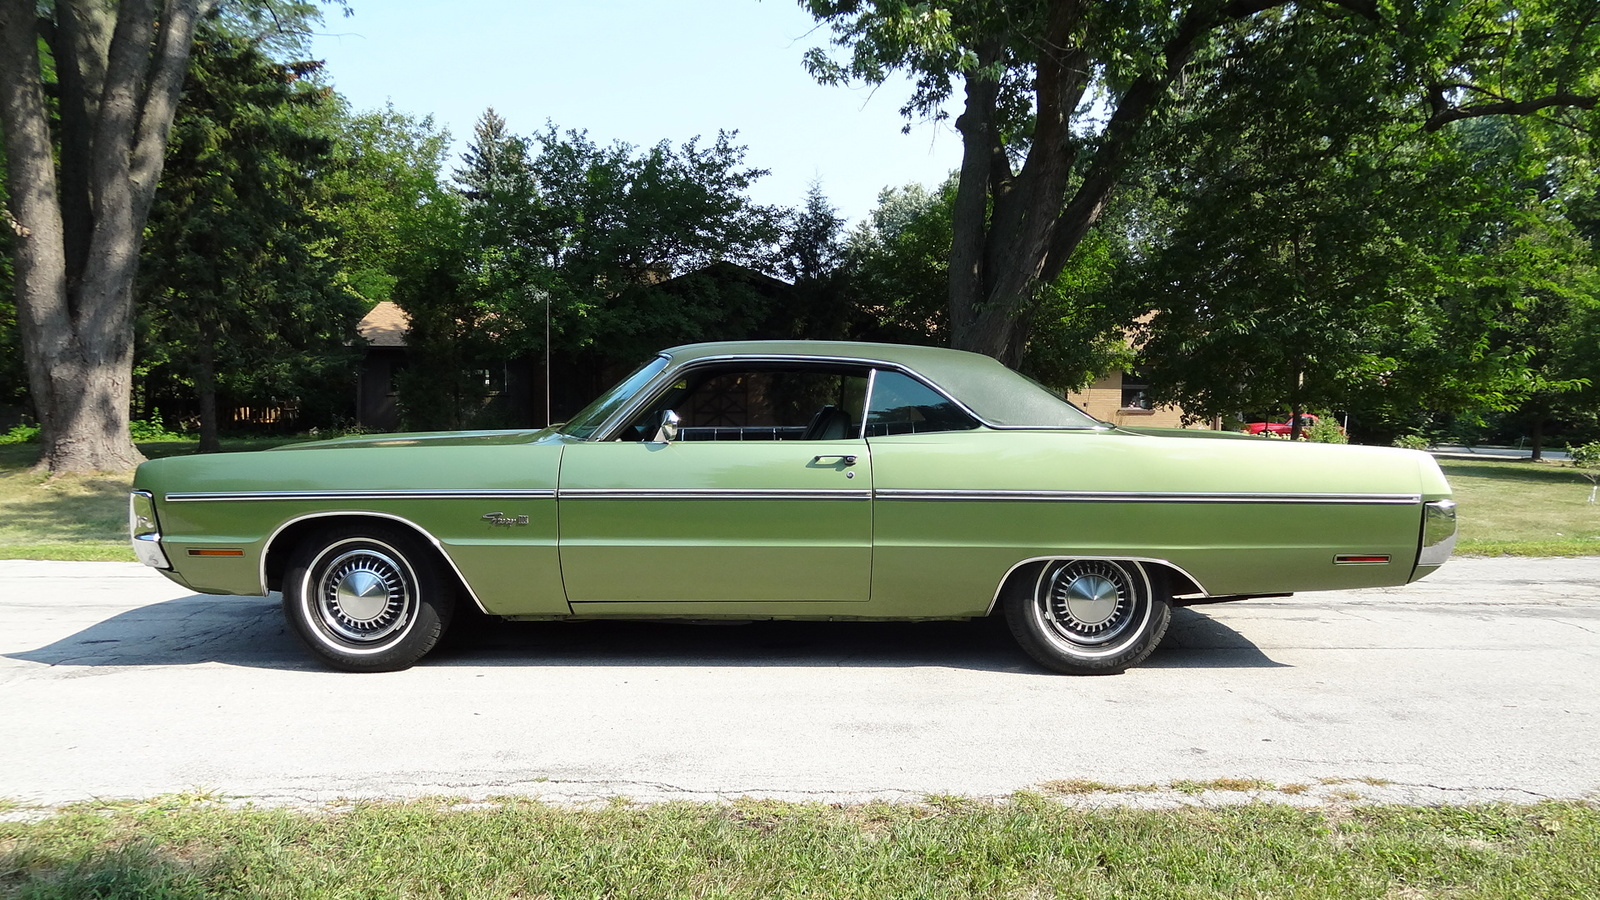 1971 plymouth fury iii side view exterior